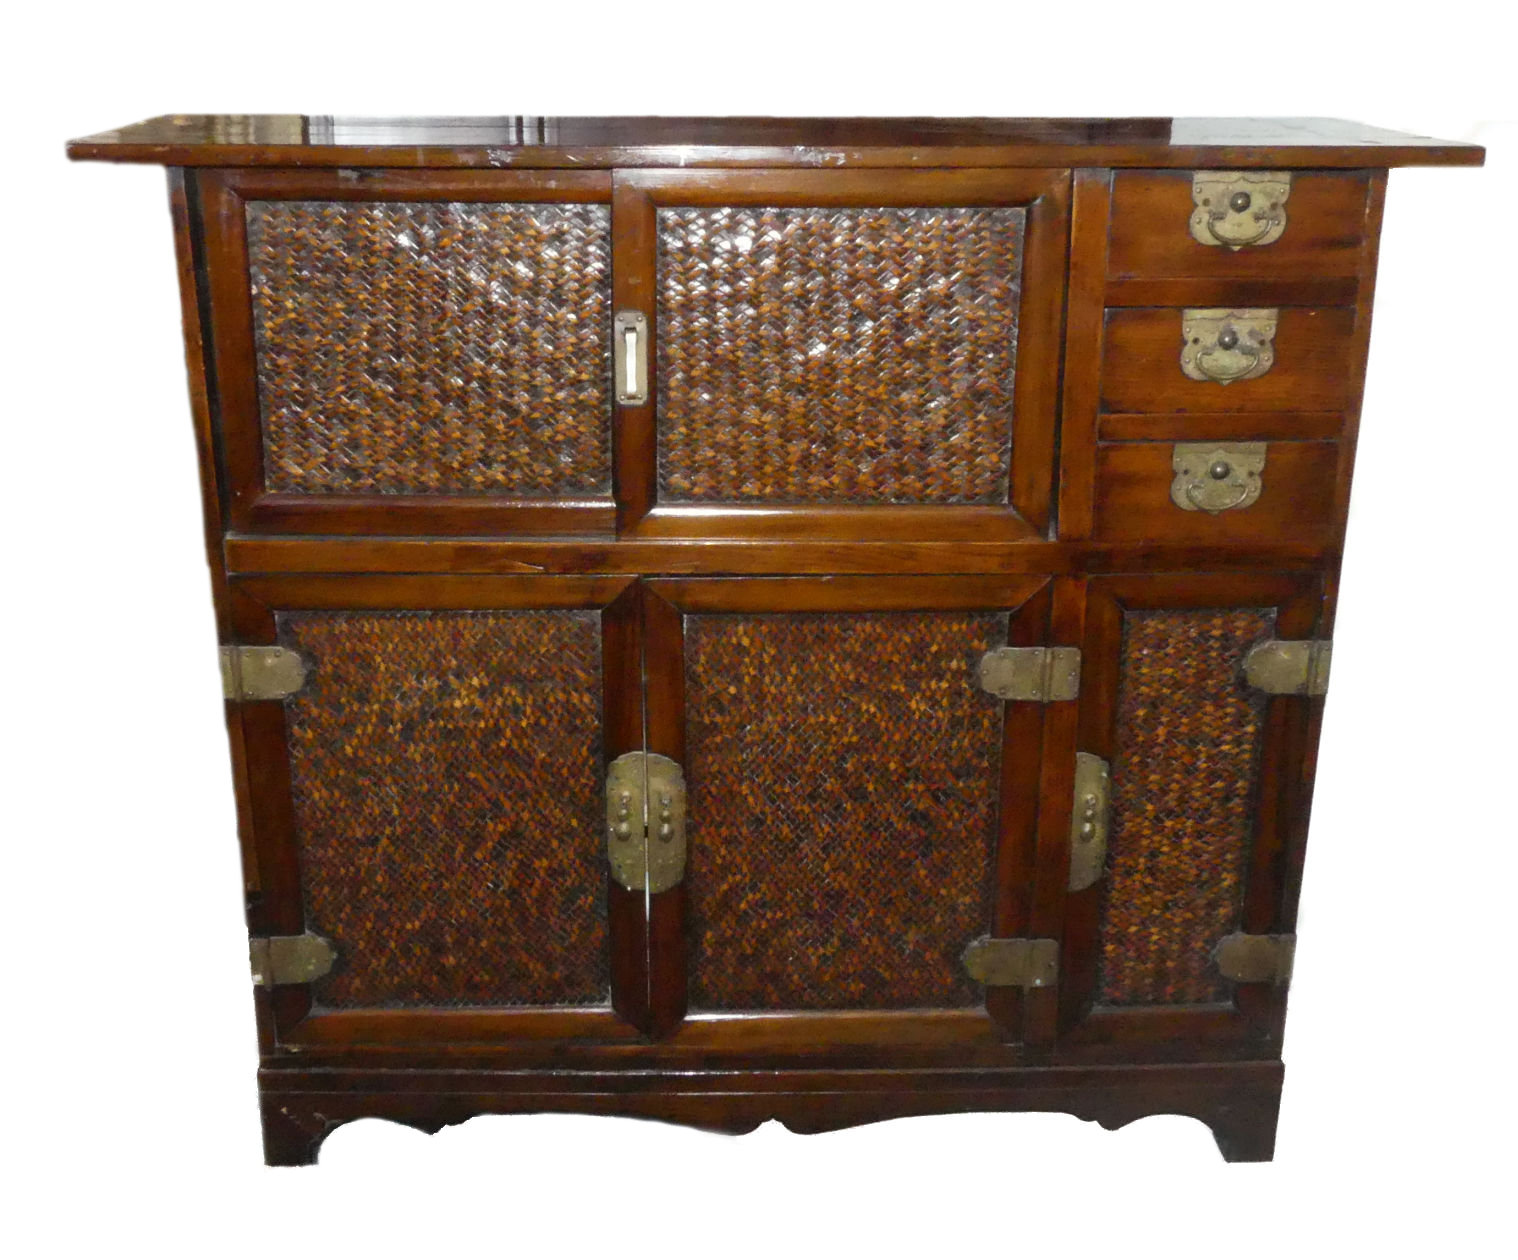 SOLD Vintage Asian Storage Cabinet